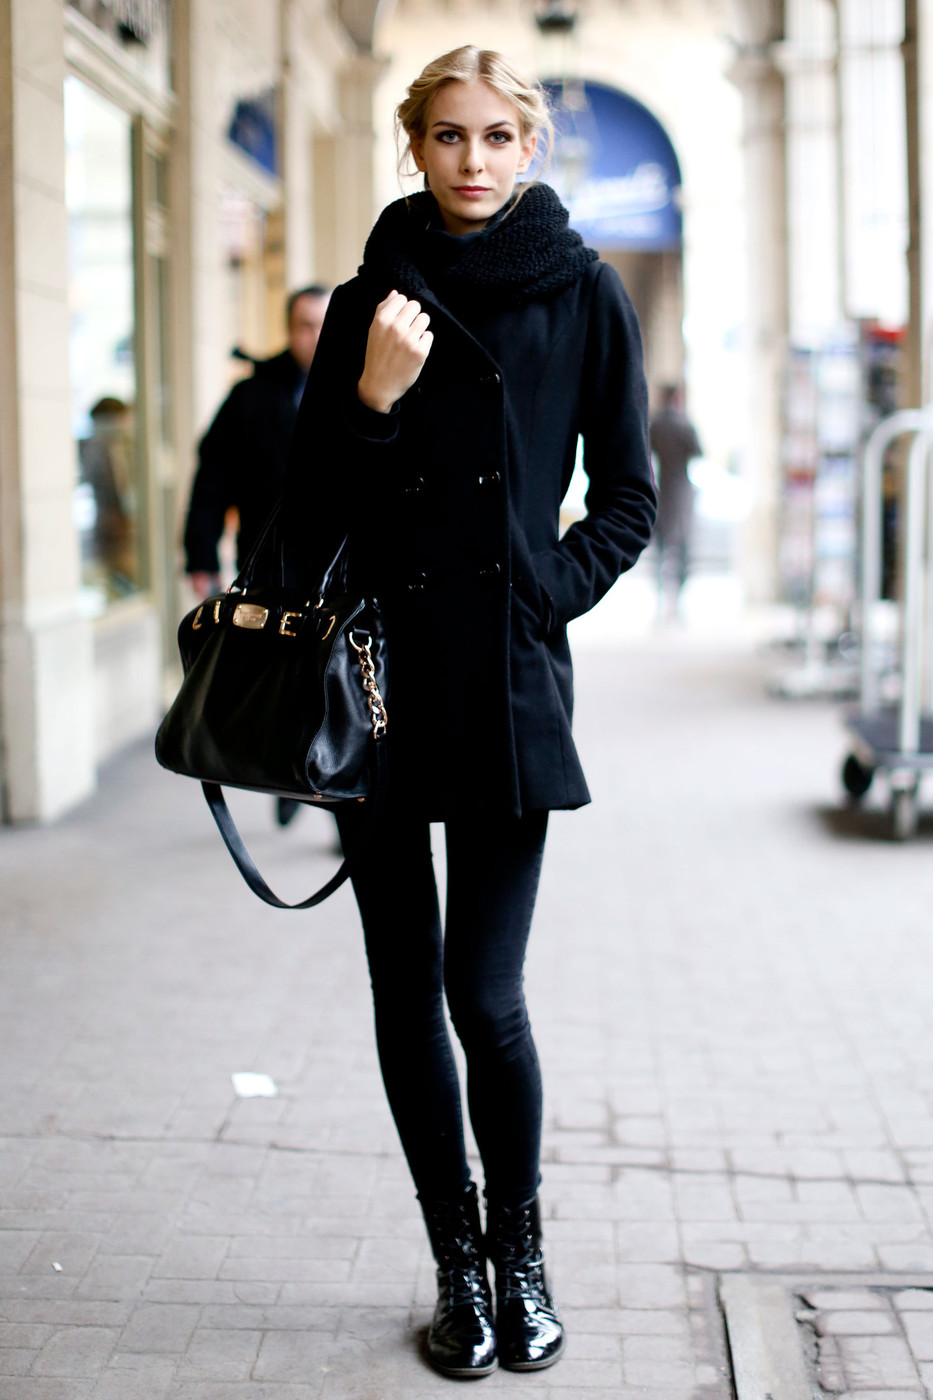 All Black High Fashion In Low Temps Street Style Inspiration Stylebistro